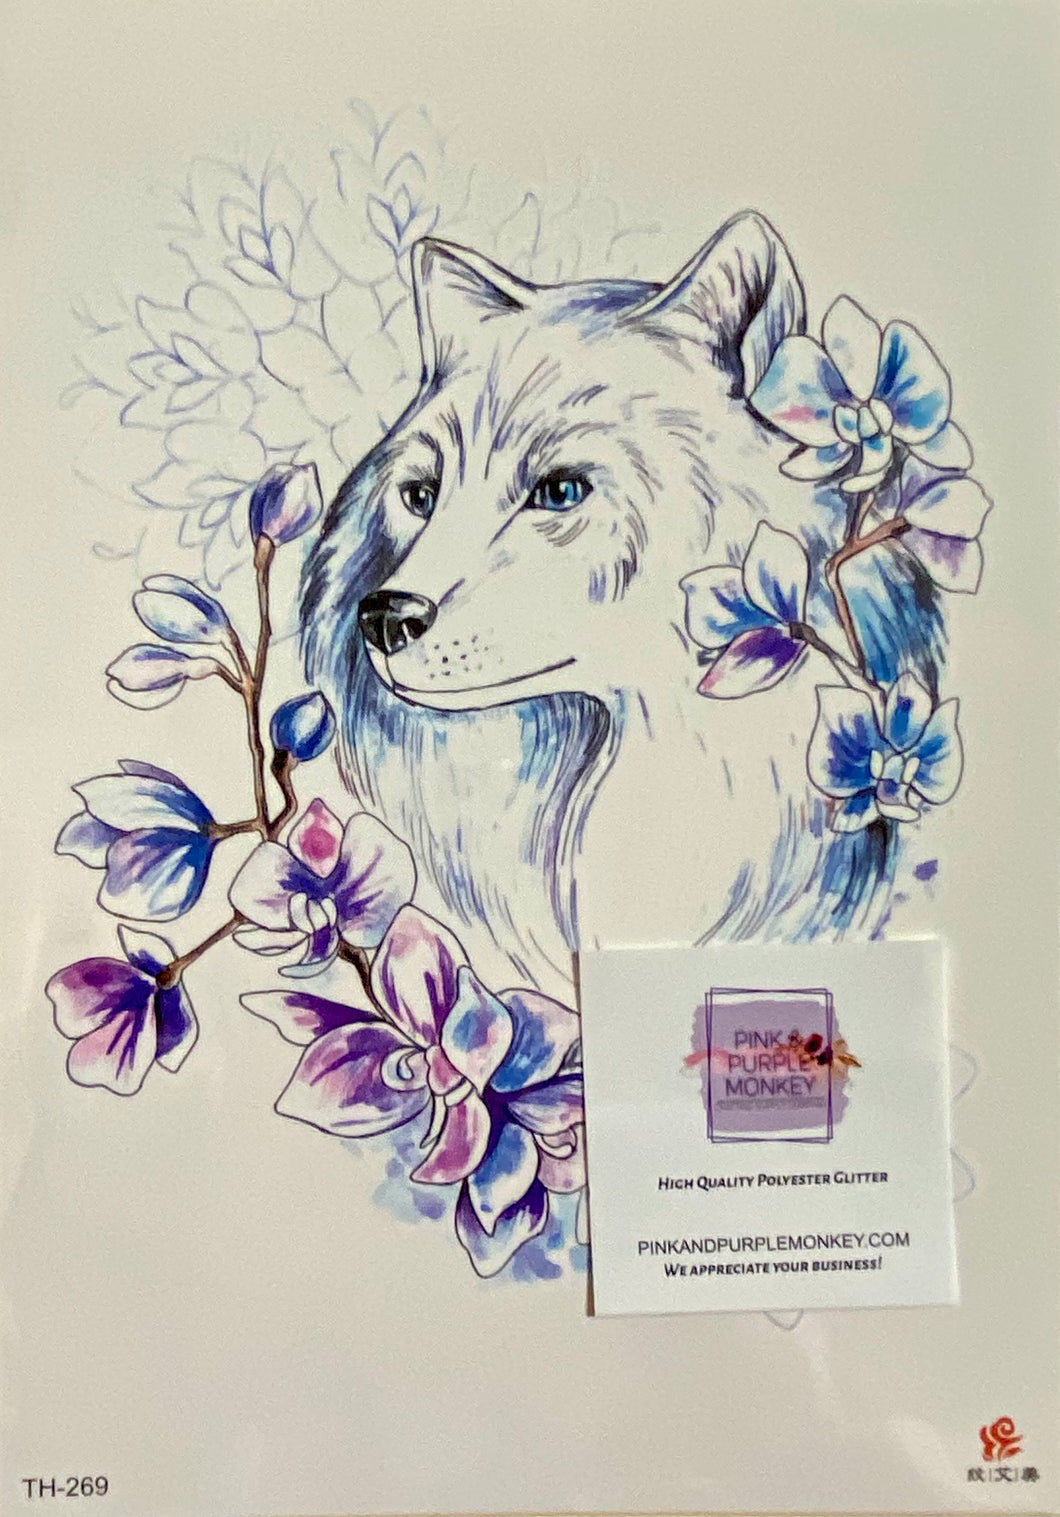 White Fox with Blue purple Flowers Tattoo - 8 x 5